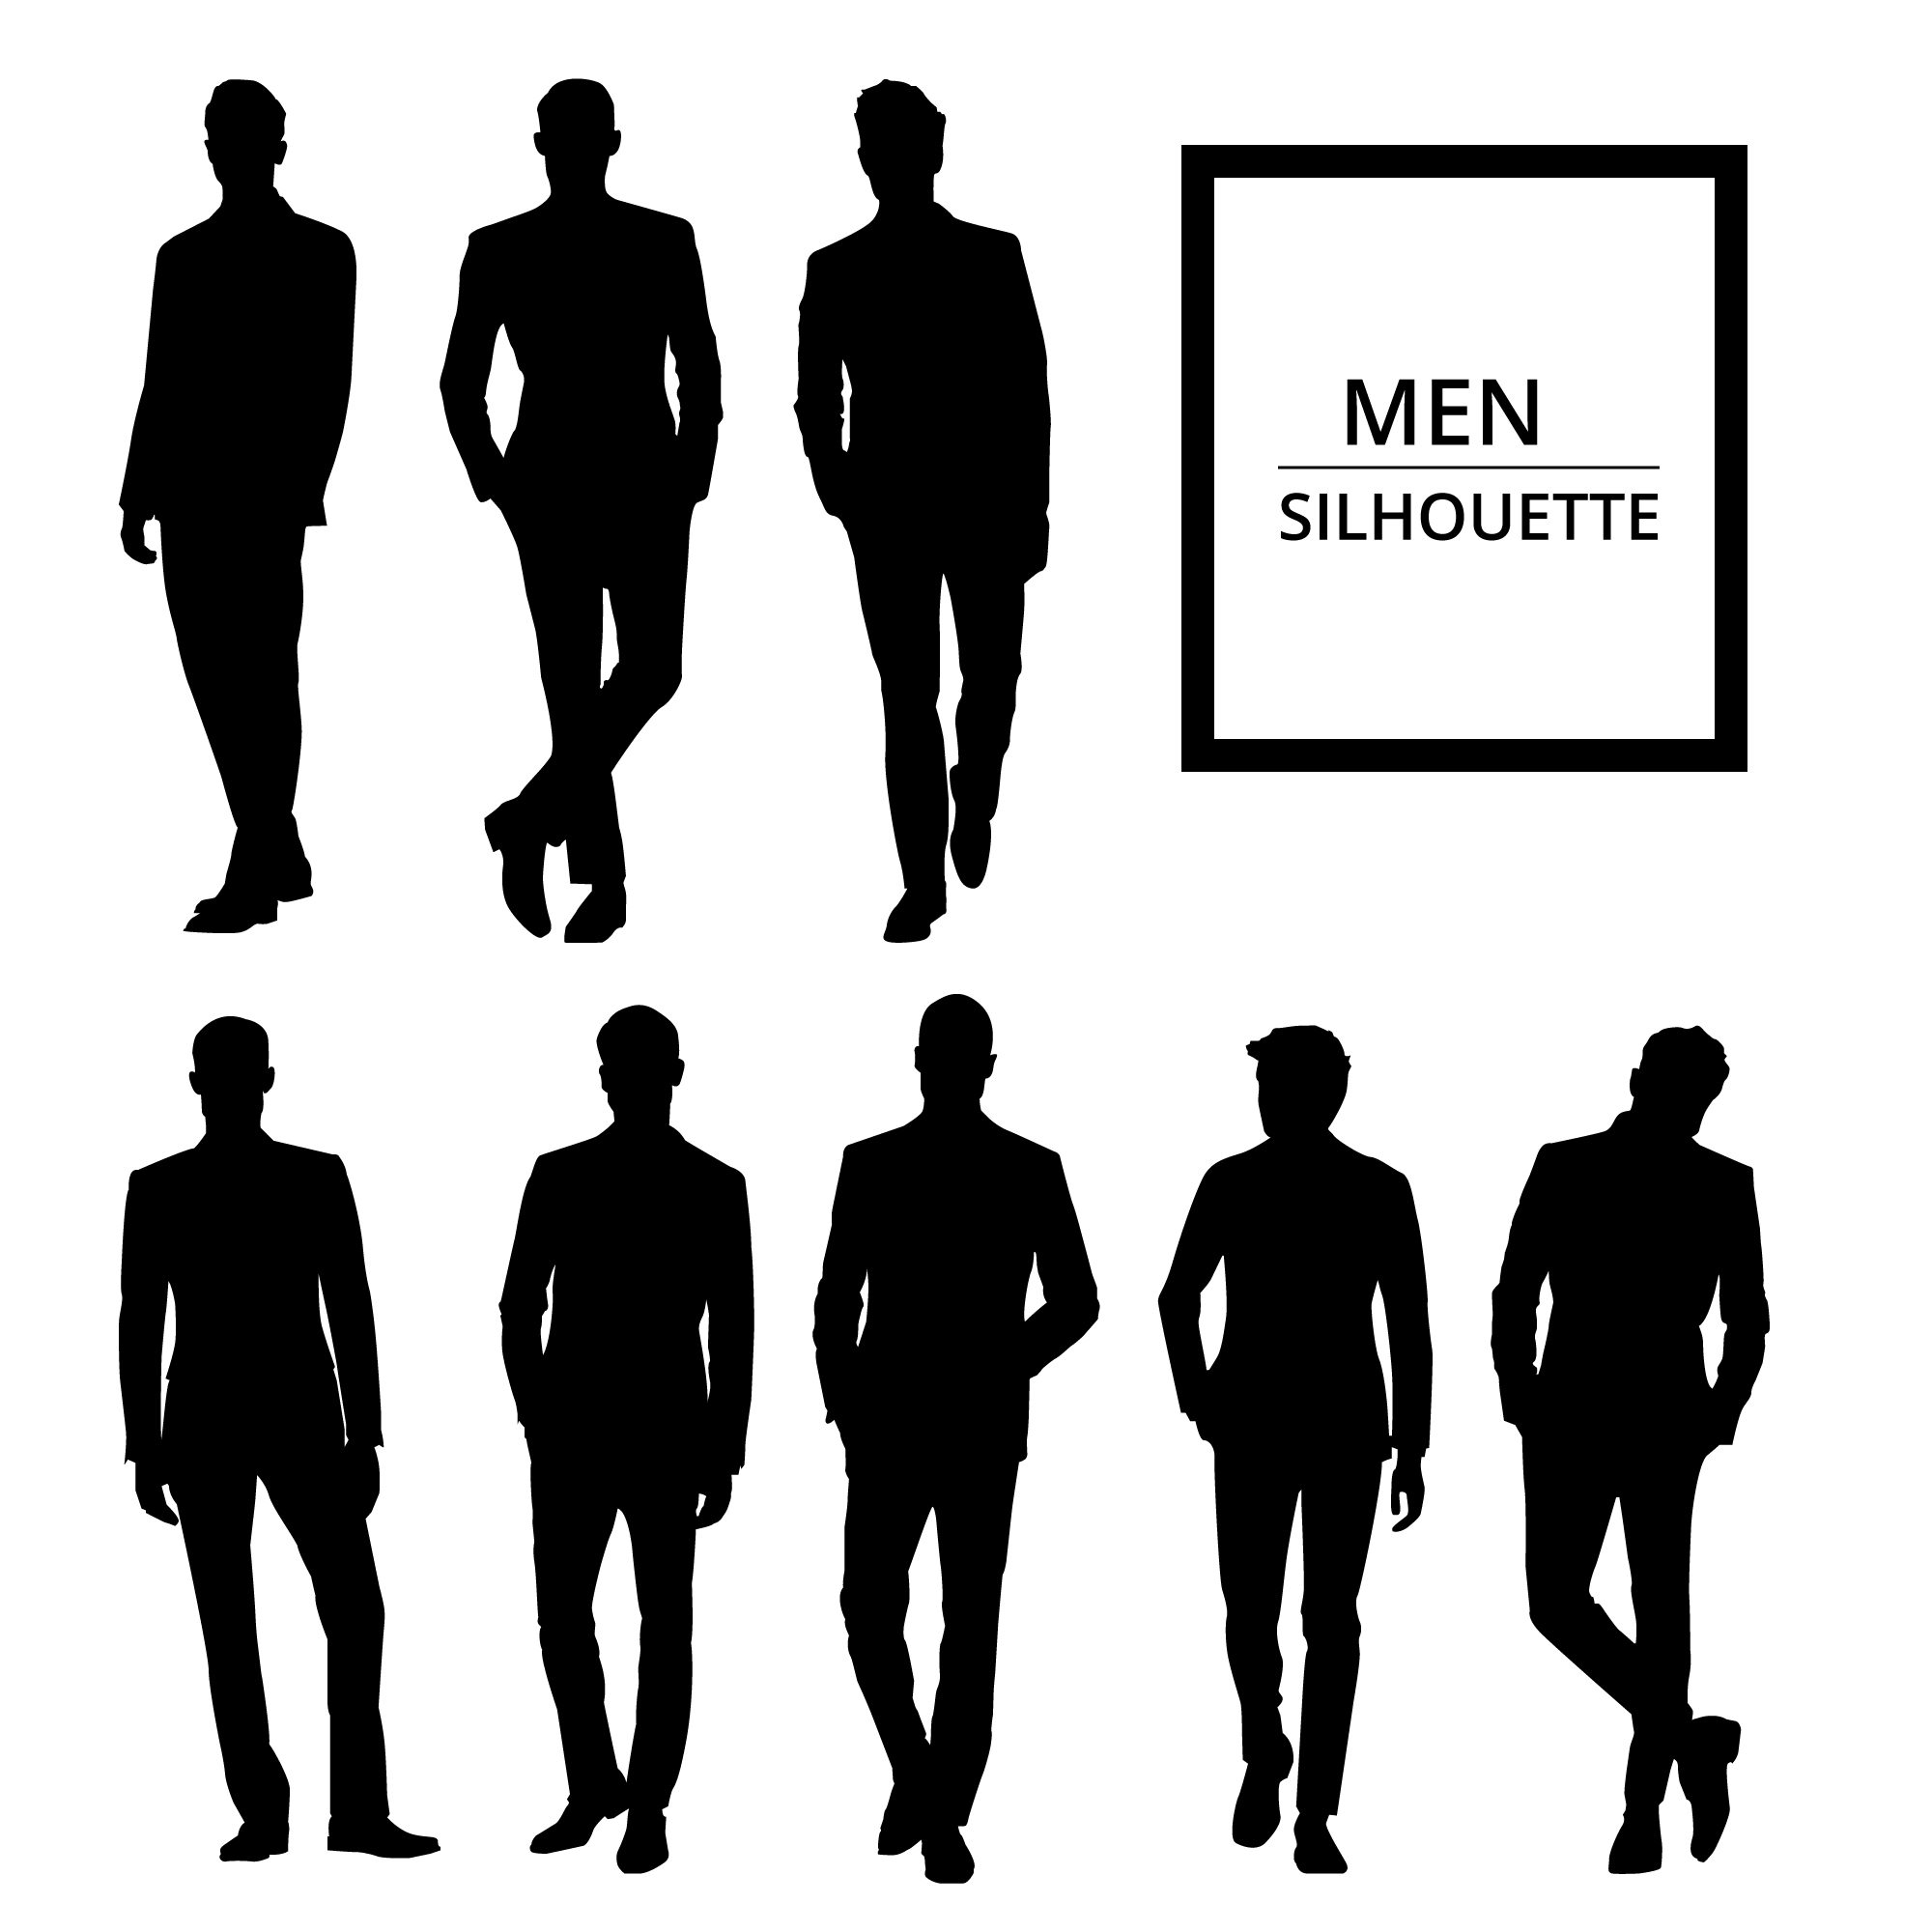 Men silhouettes in suit